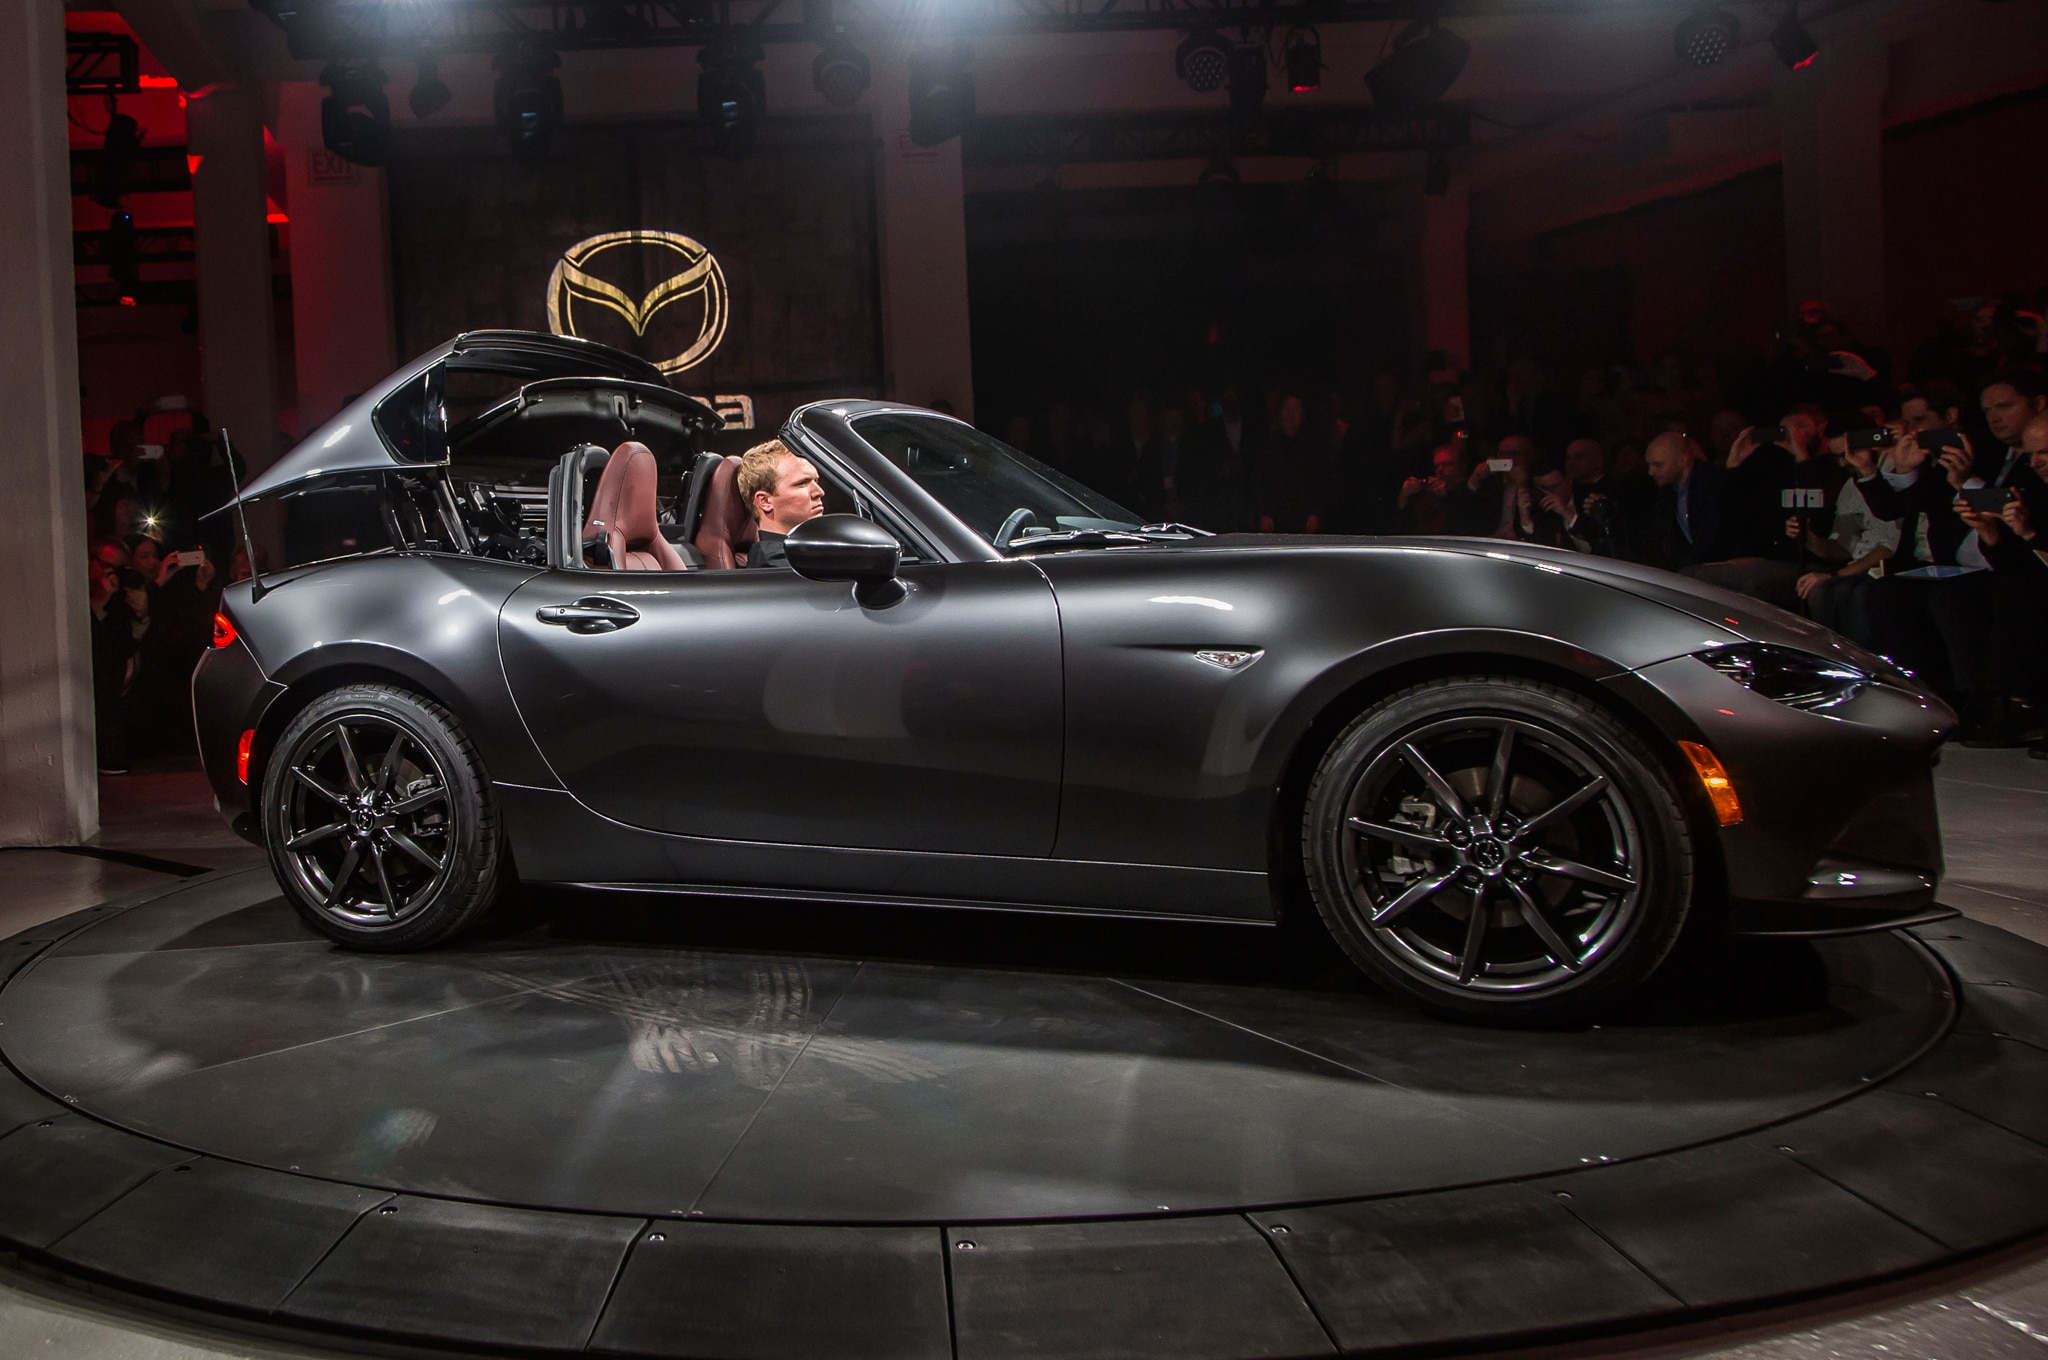 http://st.automobilemag.com/uploads/sites/11/2016/03/2017-Mazda-MX-5-Miata-RF-on-stage-side-view-top-folding.jpg